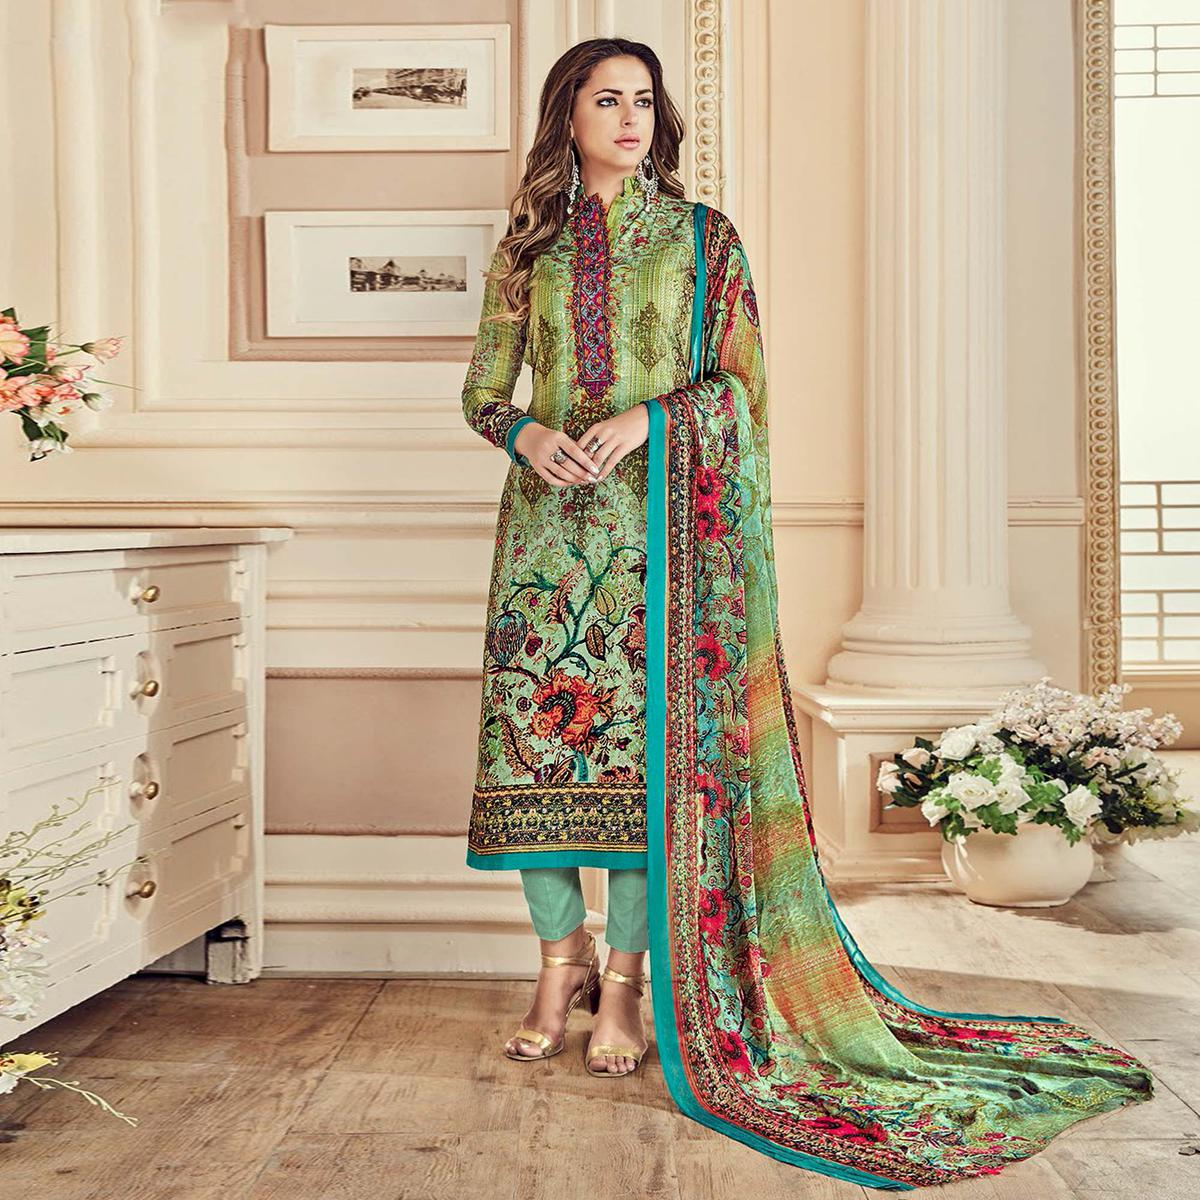 Classy Shaded Green Colored Designer Pure Cambric Cotton Suit